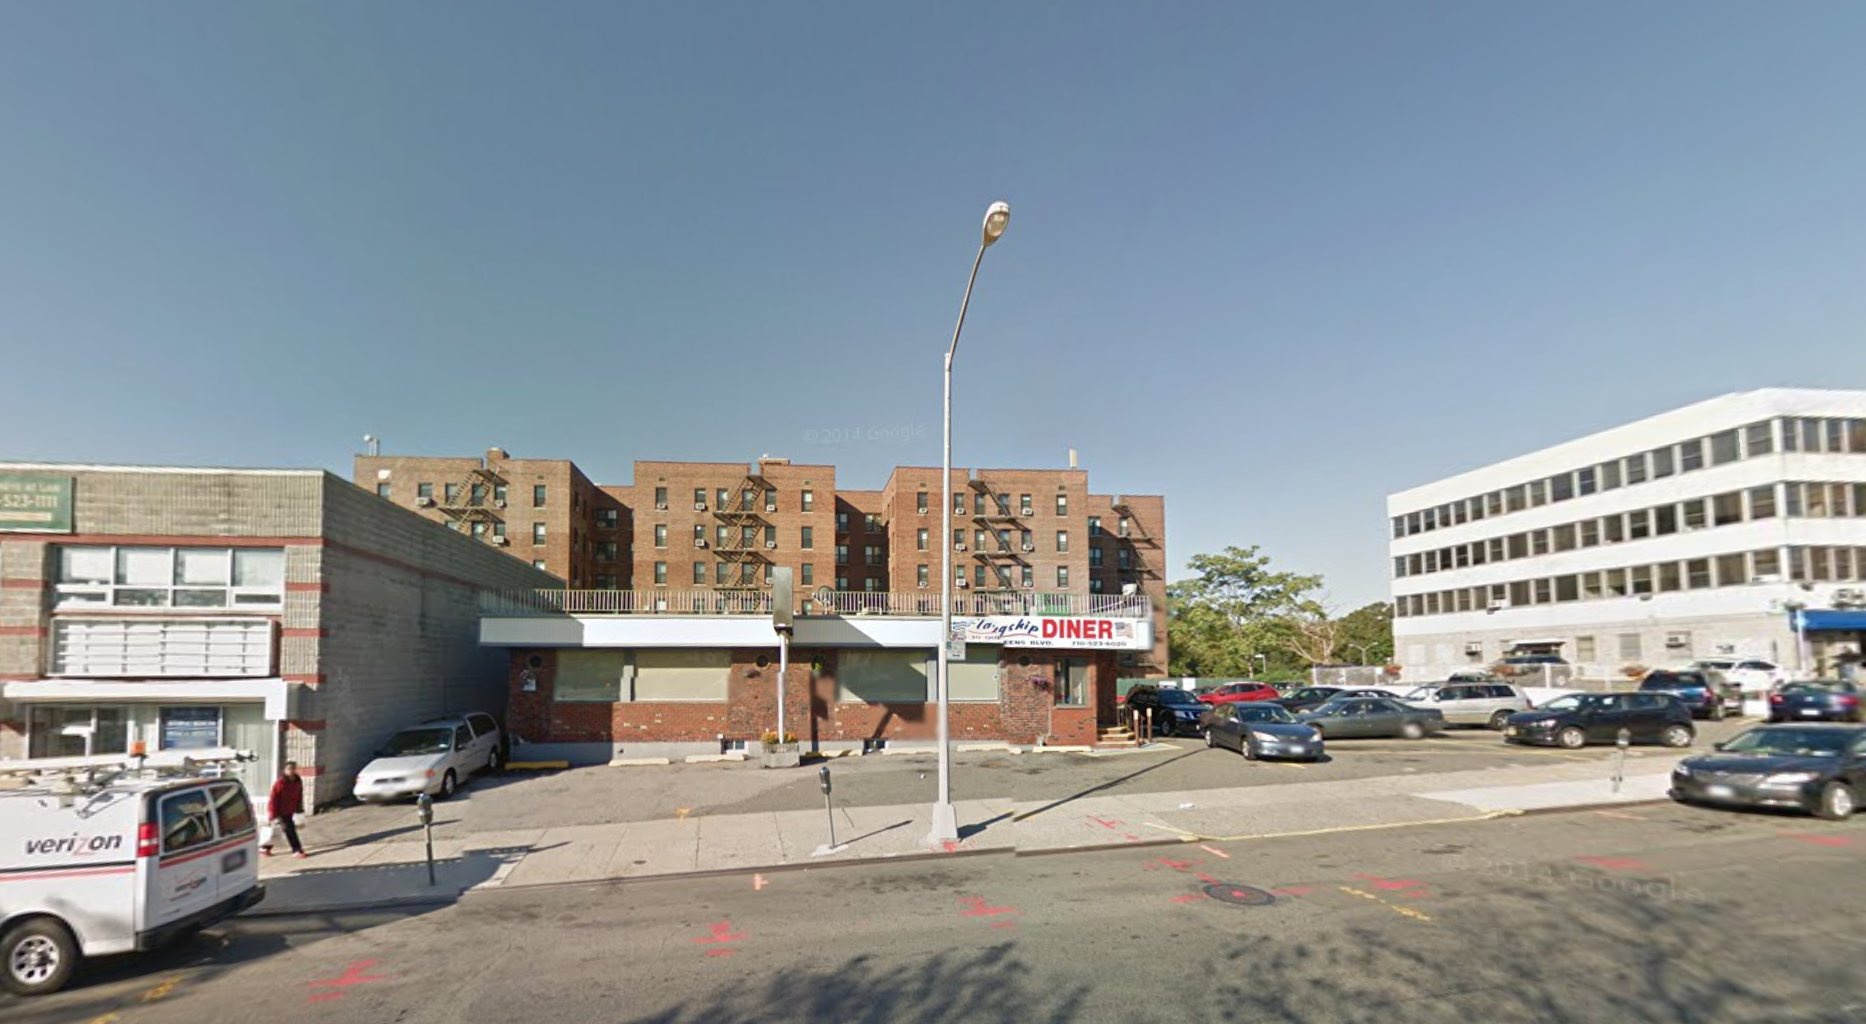 138-28 Queens Boulevard, image via Google Maps